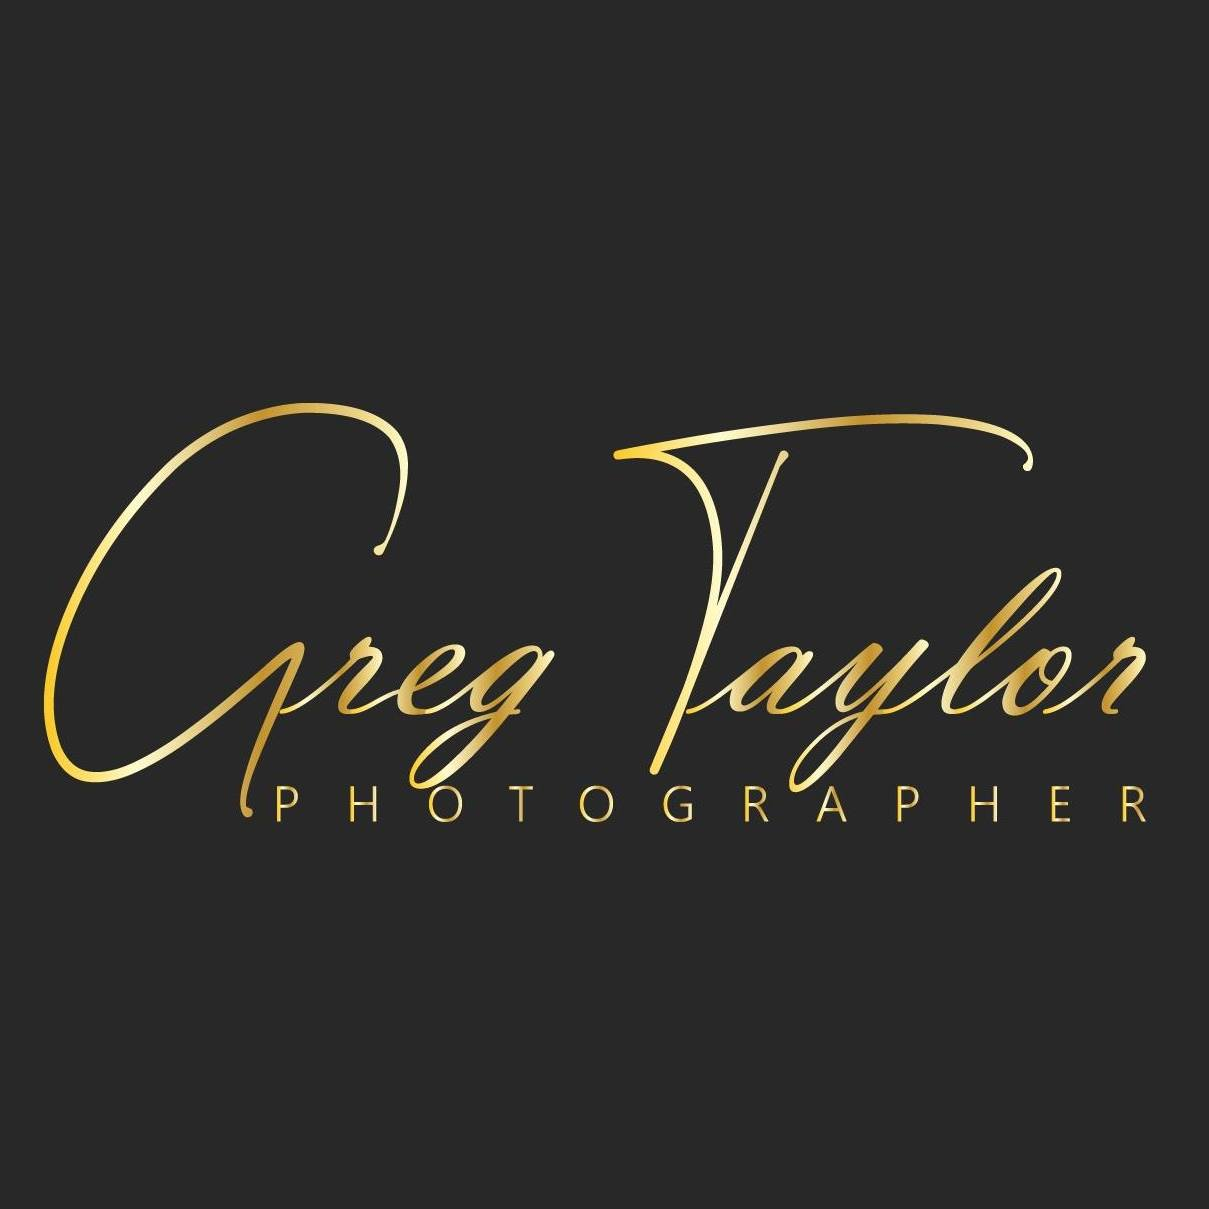 Greg Taylor Photographer | Weddings, Dance, Portraits